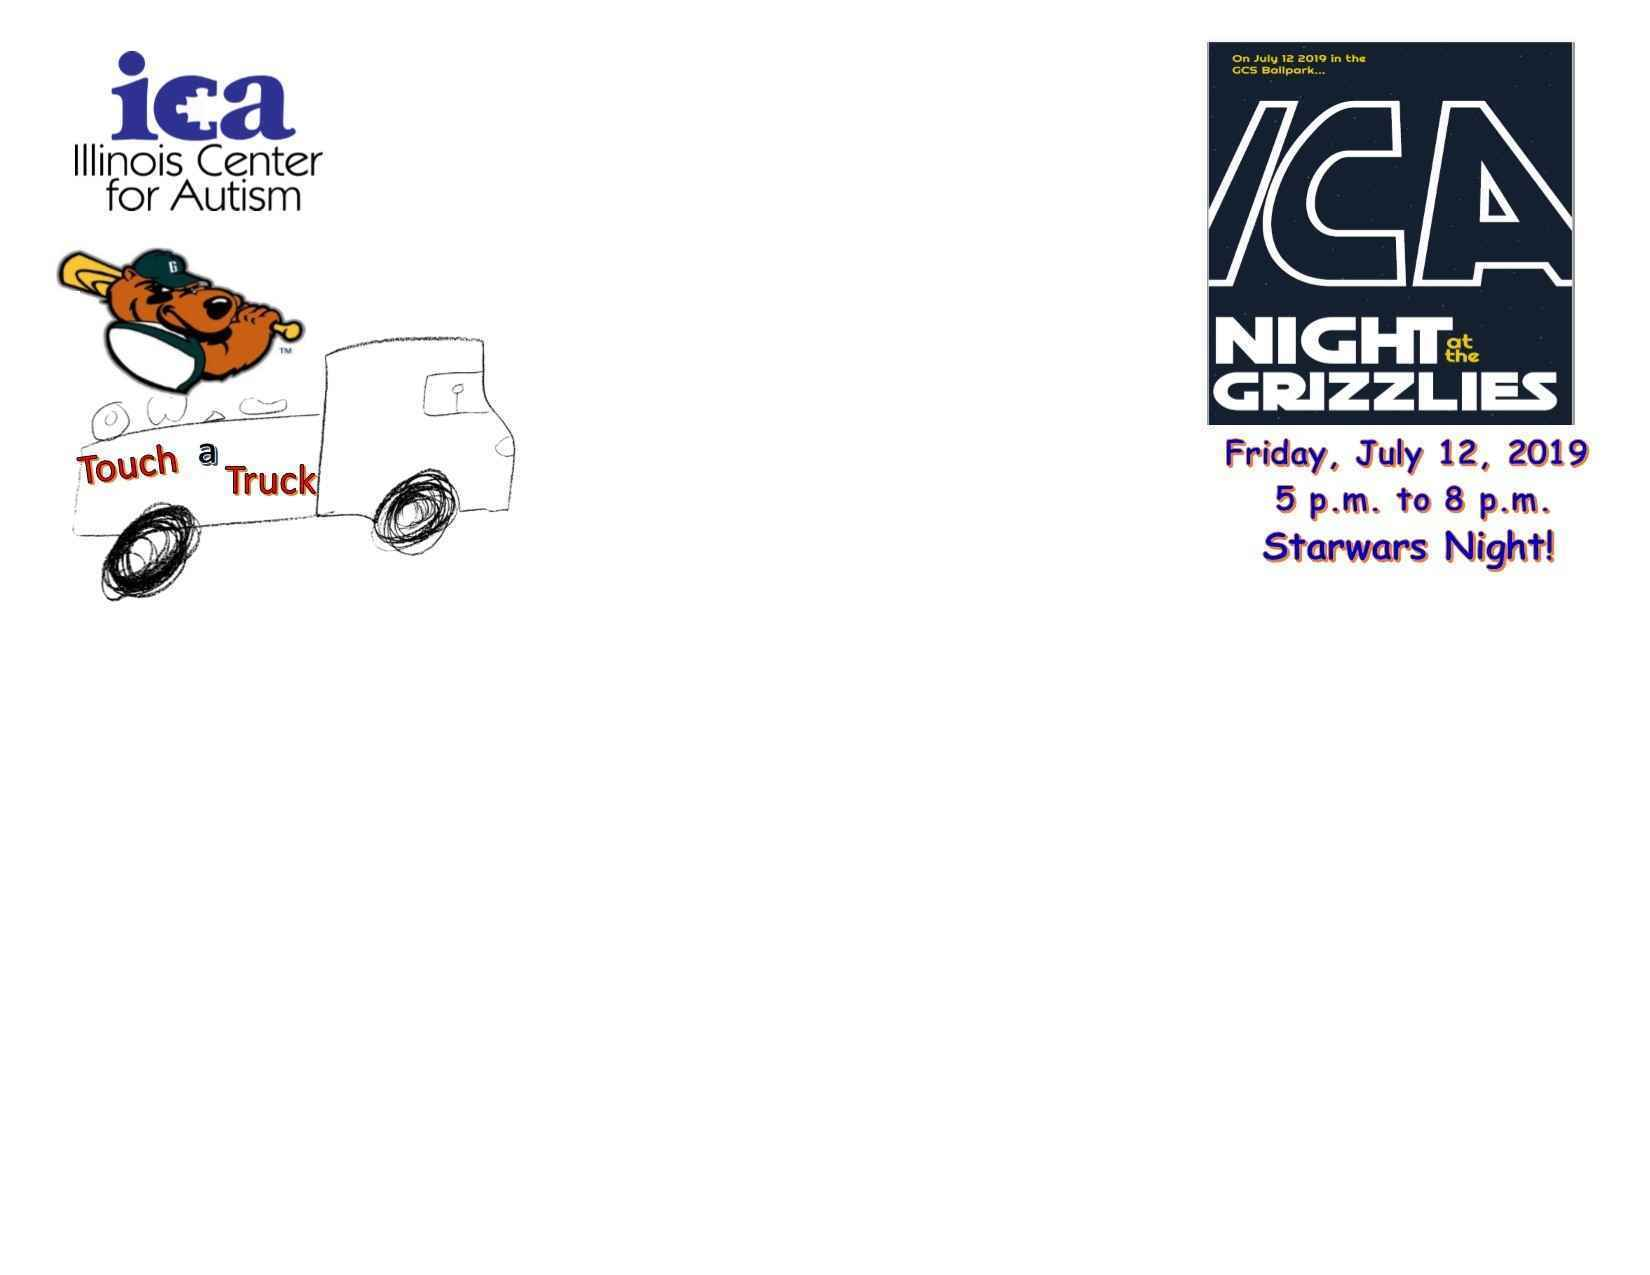 Grizzlies/Touch a Truck Sponsor image